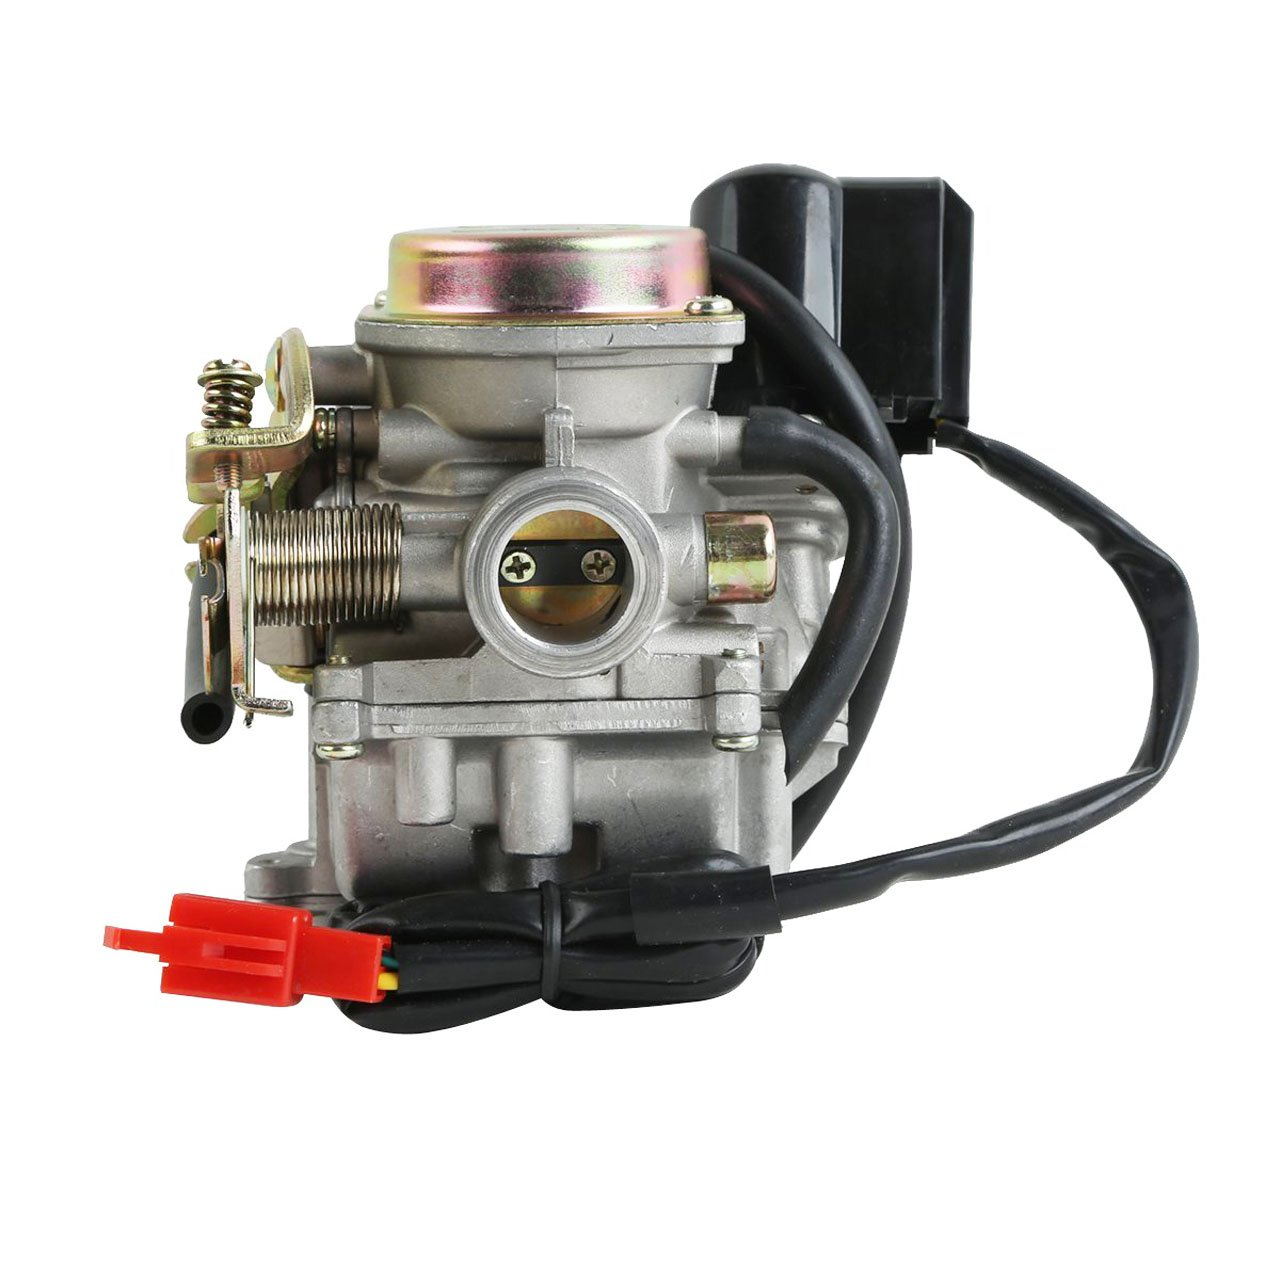 New Carburetor 50cc for 4 Stroke GY6 49cc 50cc Chinese Scooter Moped 139QMB Taotao Kymco by FYIYI